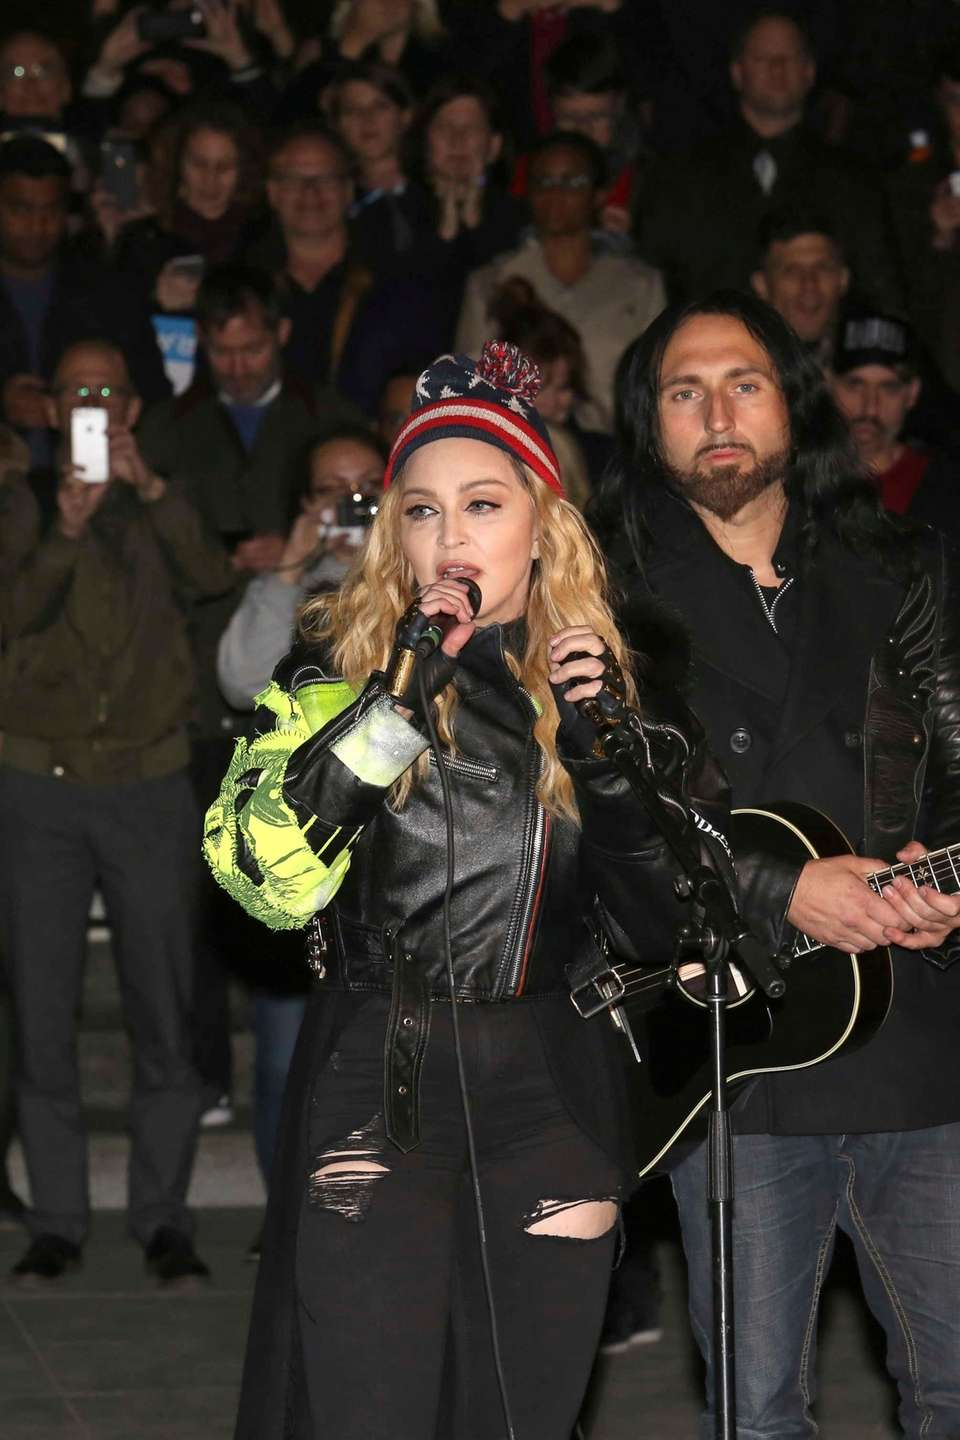 Madonna performs in support of Democratic presidential candidate